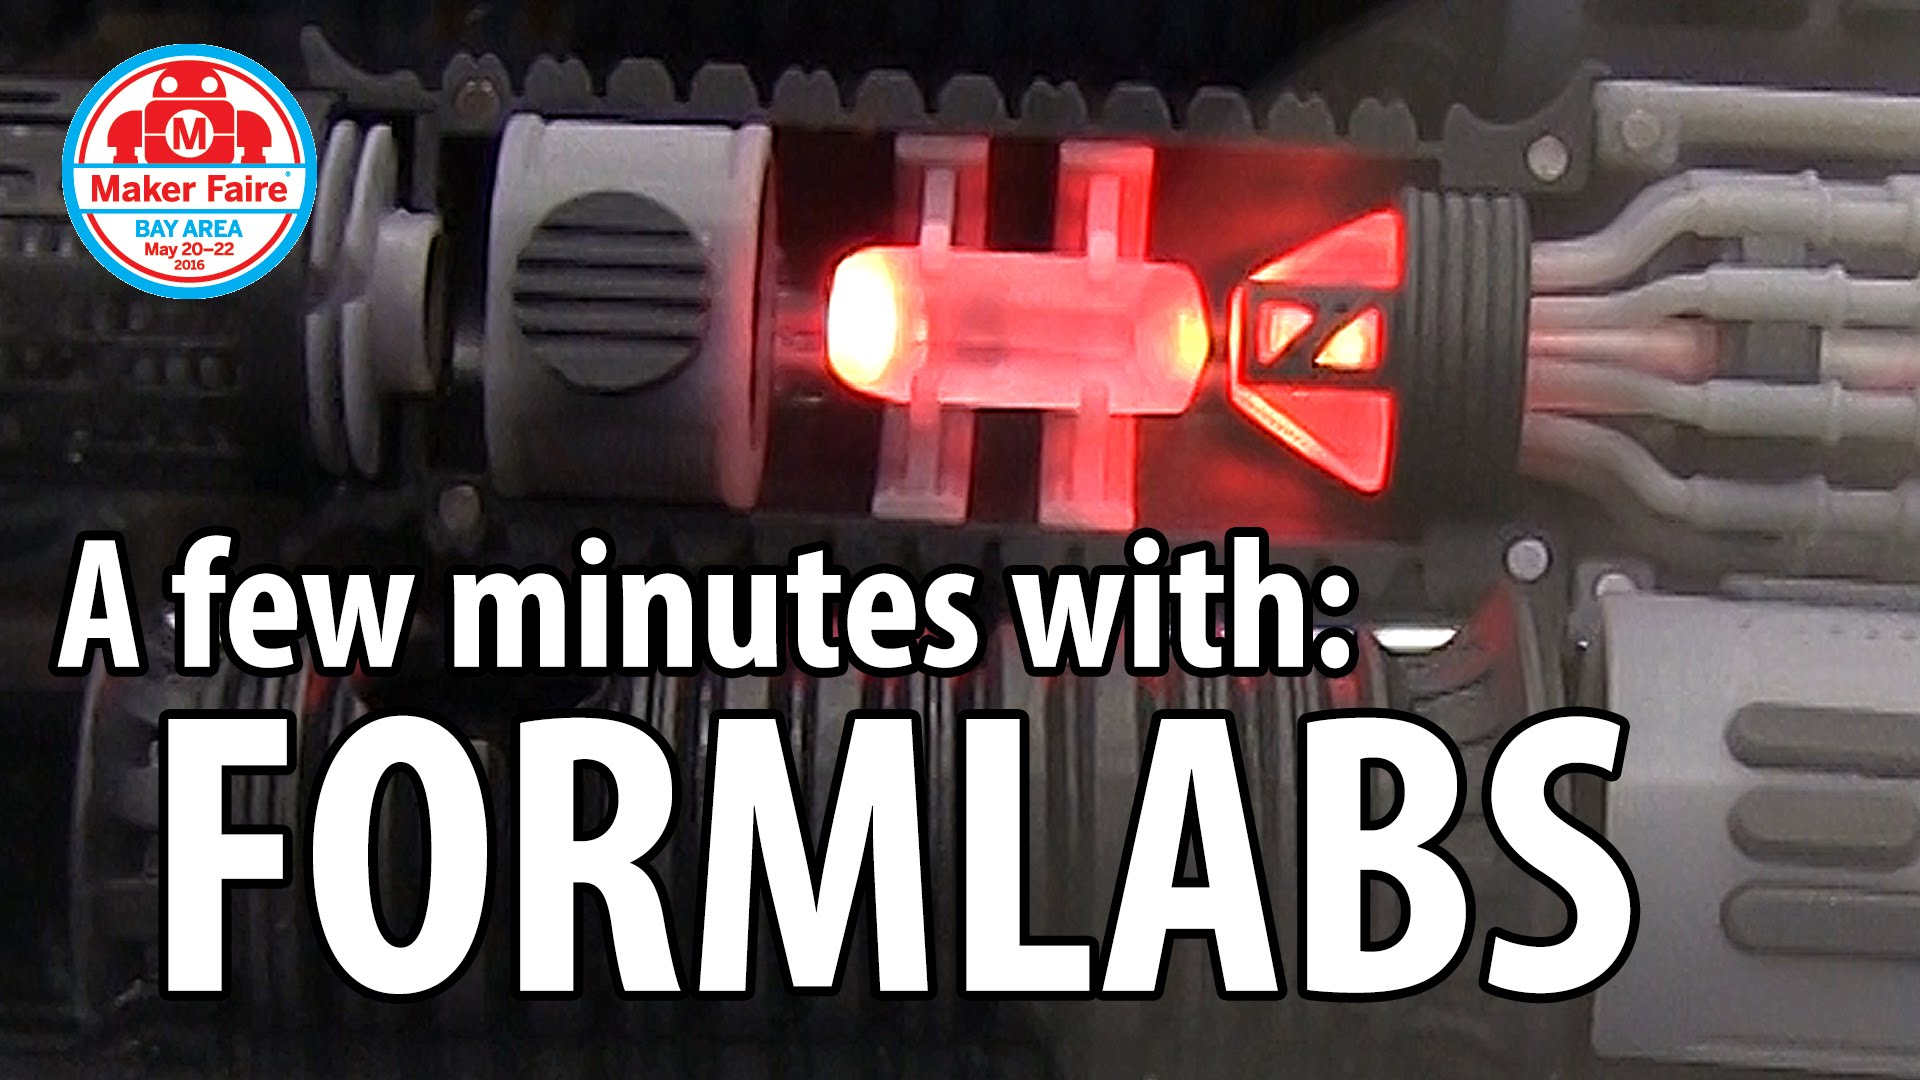 3D Printing: Formlabs at Maker Faire 2016